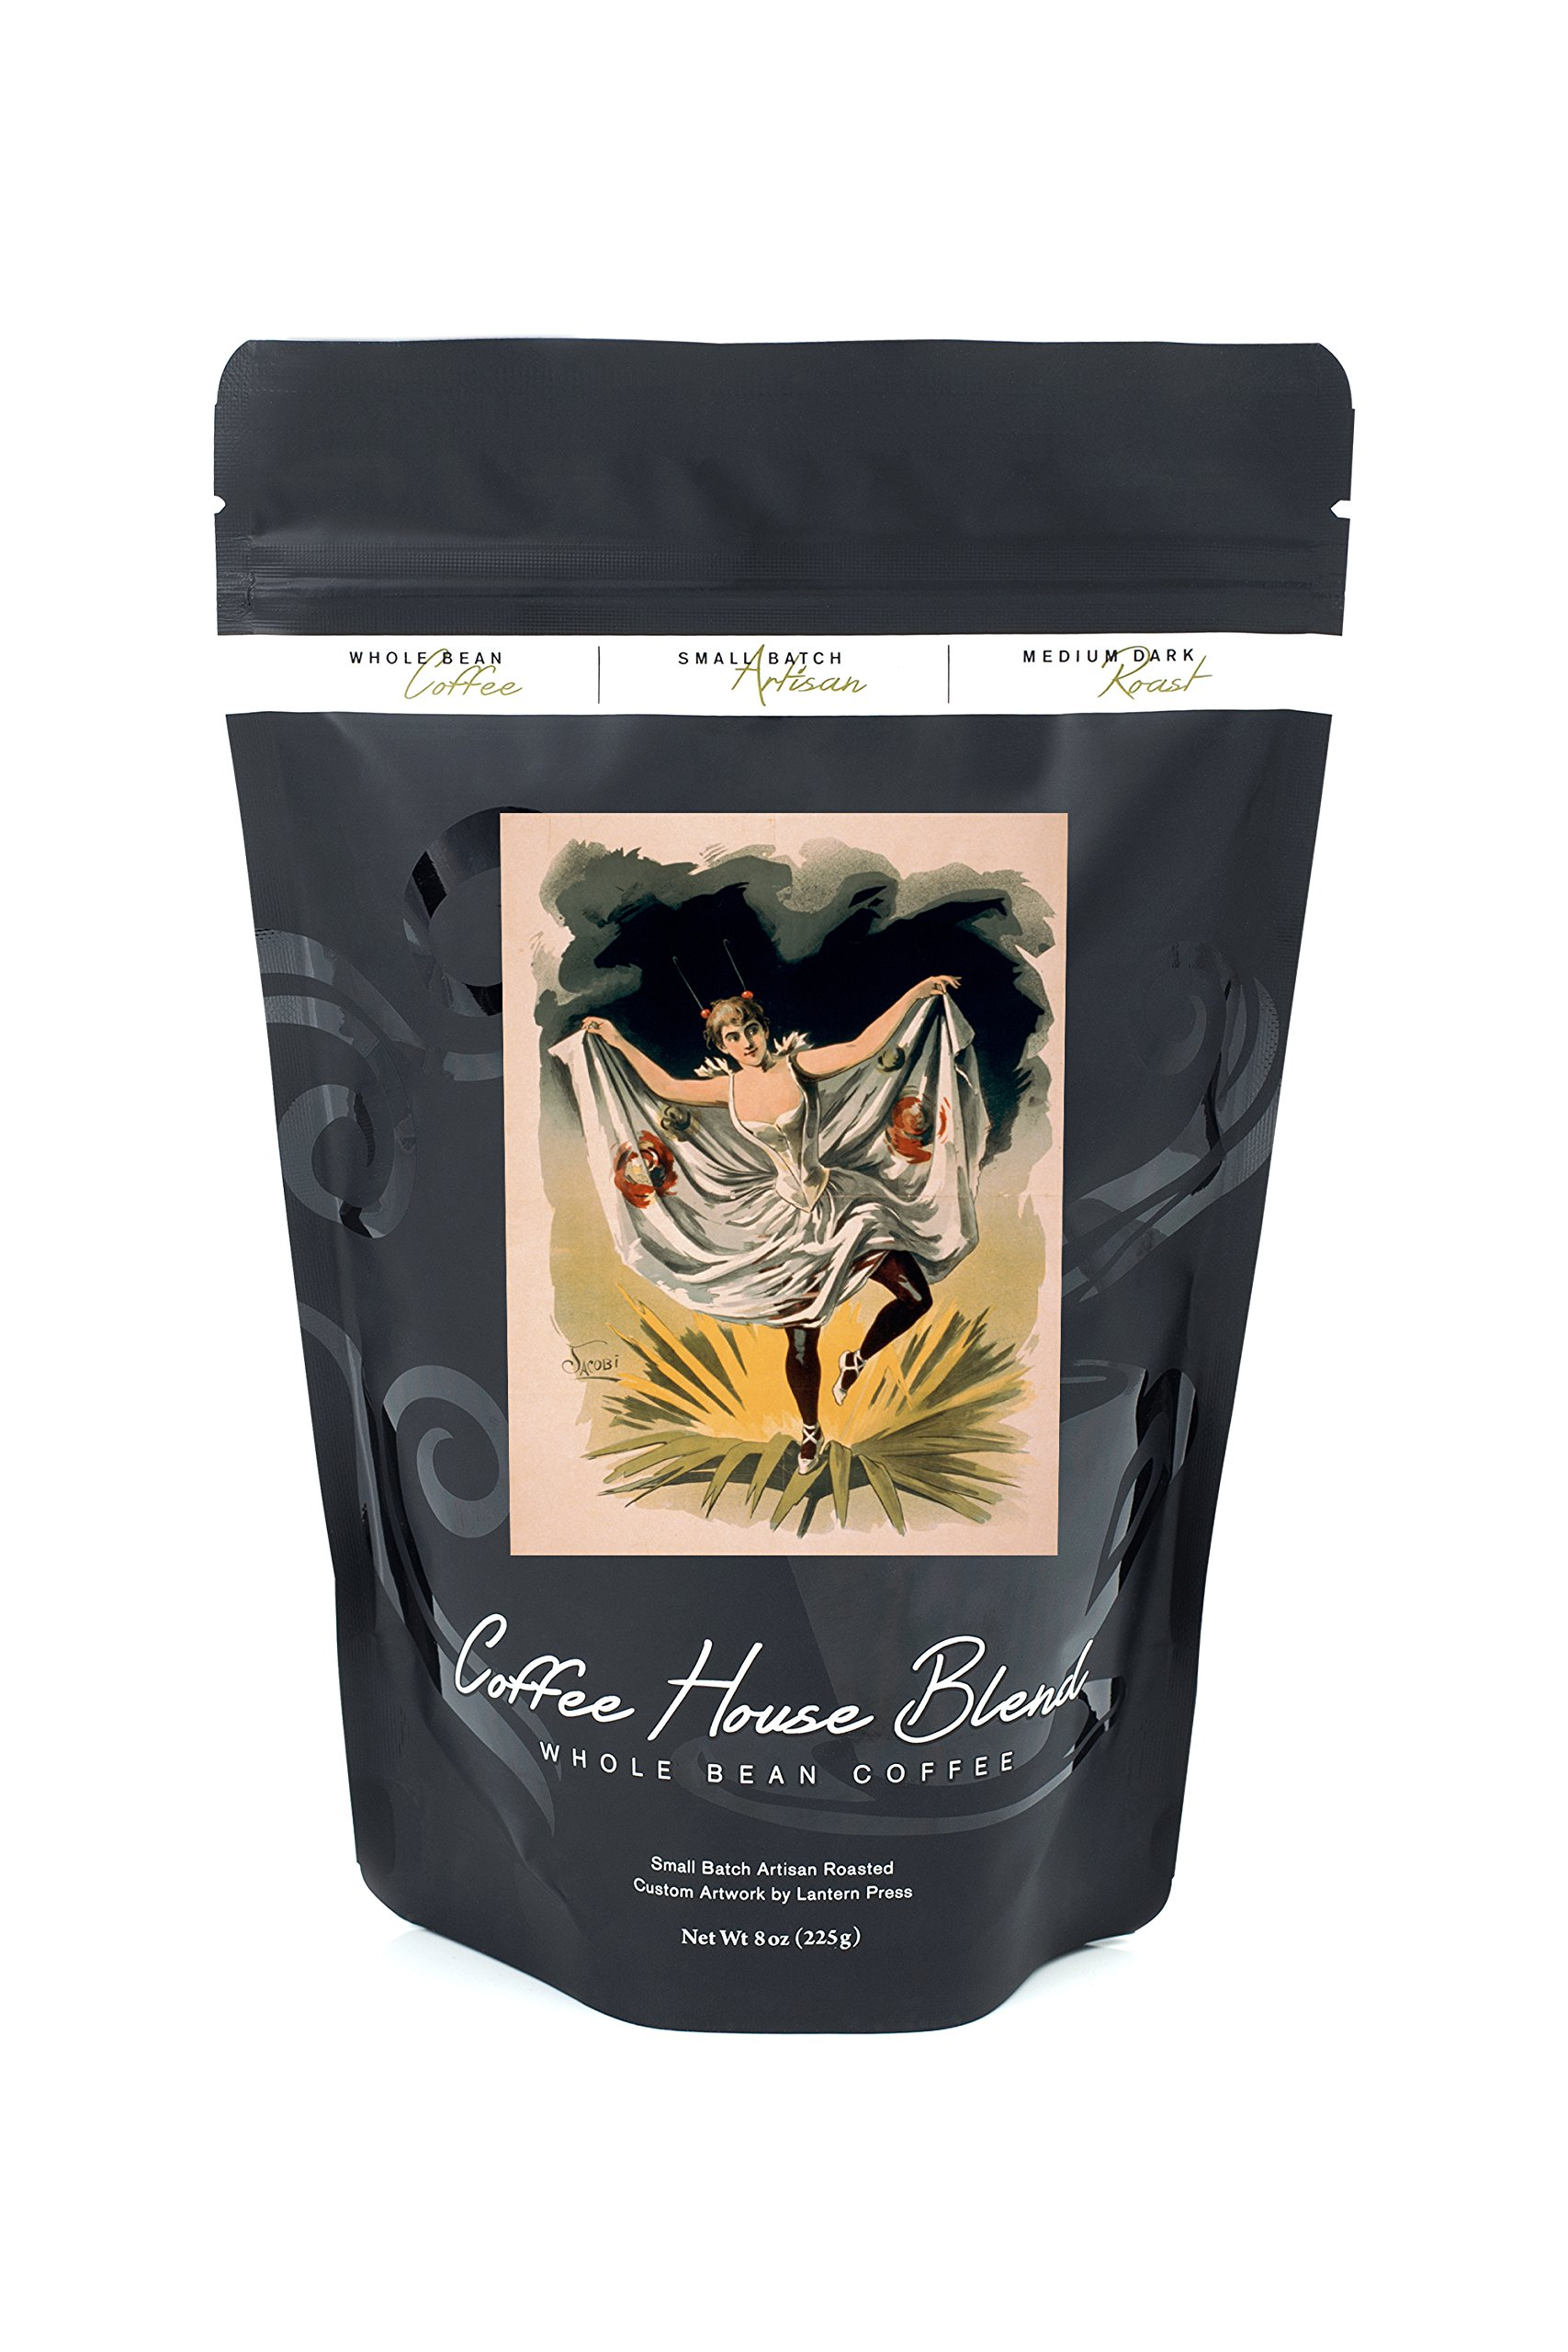 Woman in Dance Costume on Flower Poster (8oz Whole Bean Small Batch Artisan Coffee - Bold & Strong Medium Dark Roast w/ Artwork)